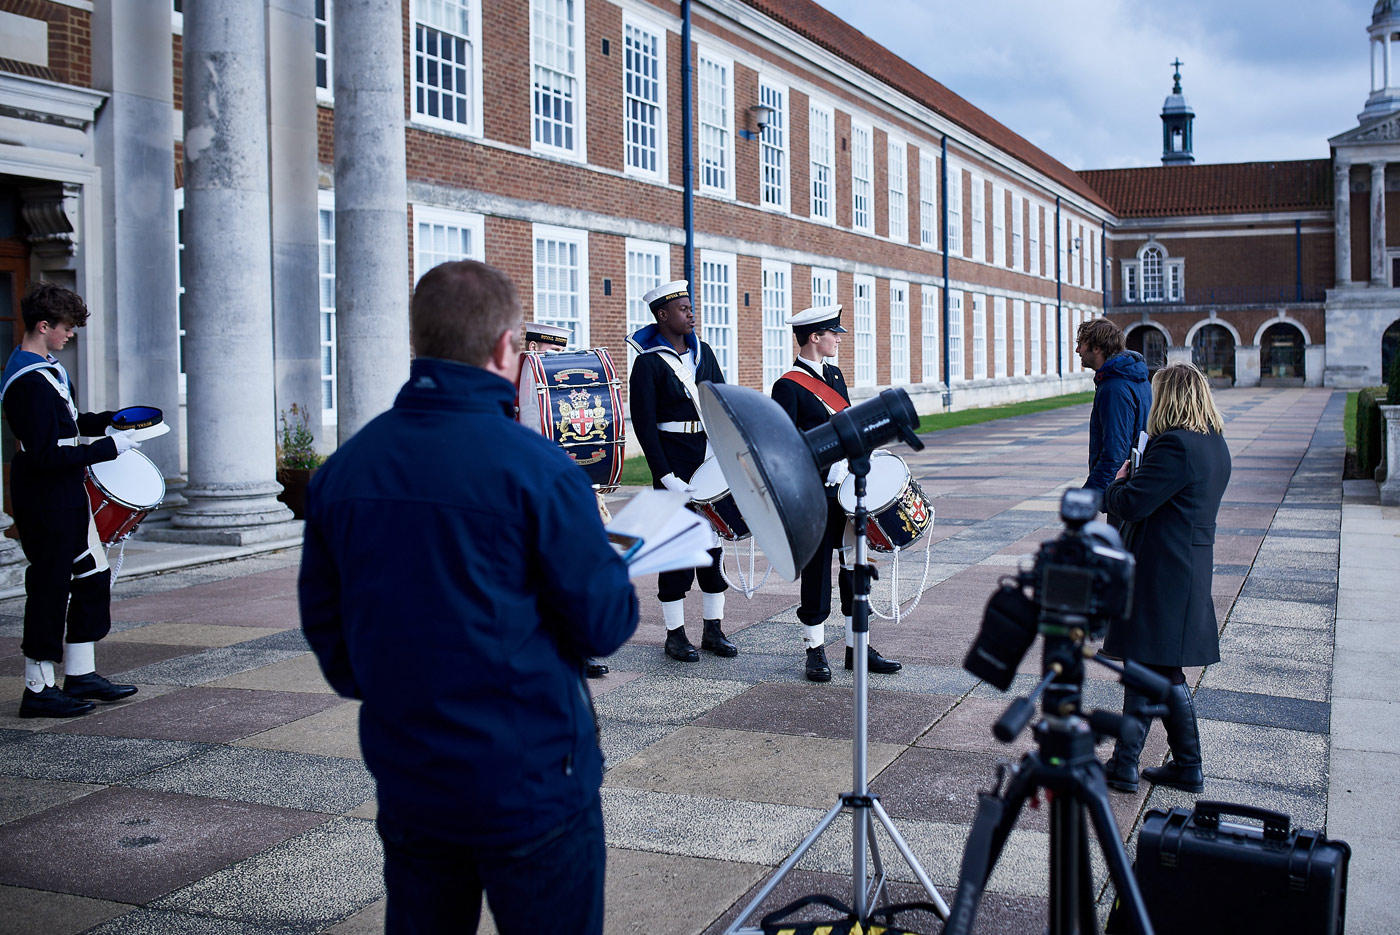 Behind the scenes on the military heritage part of our Royal Hospital School photoshoot